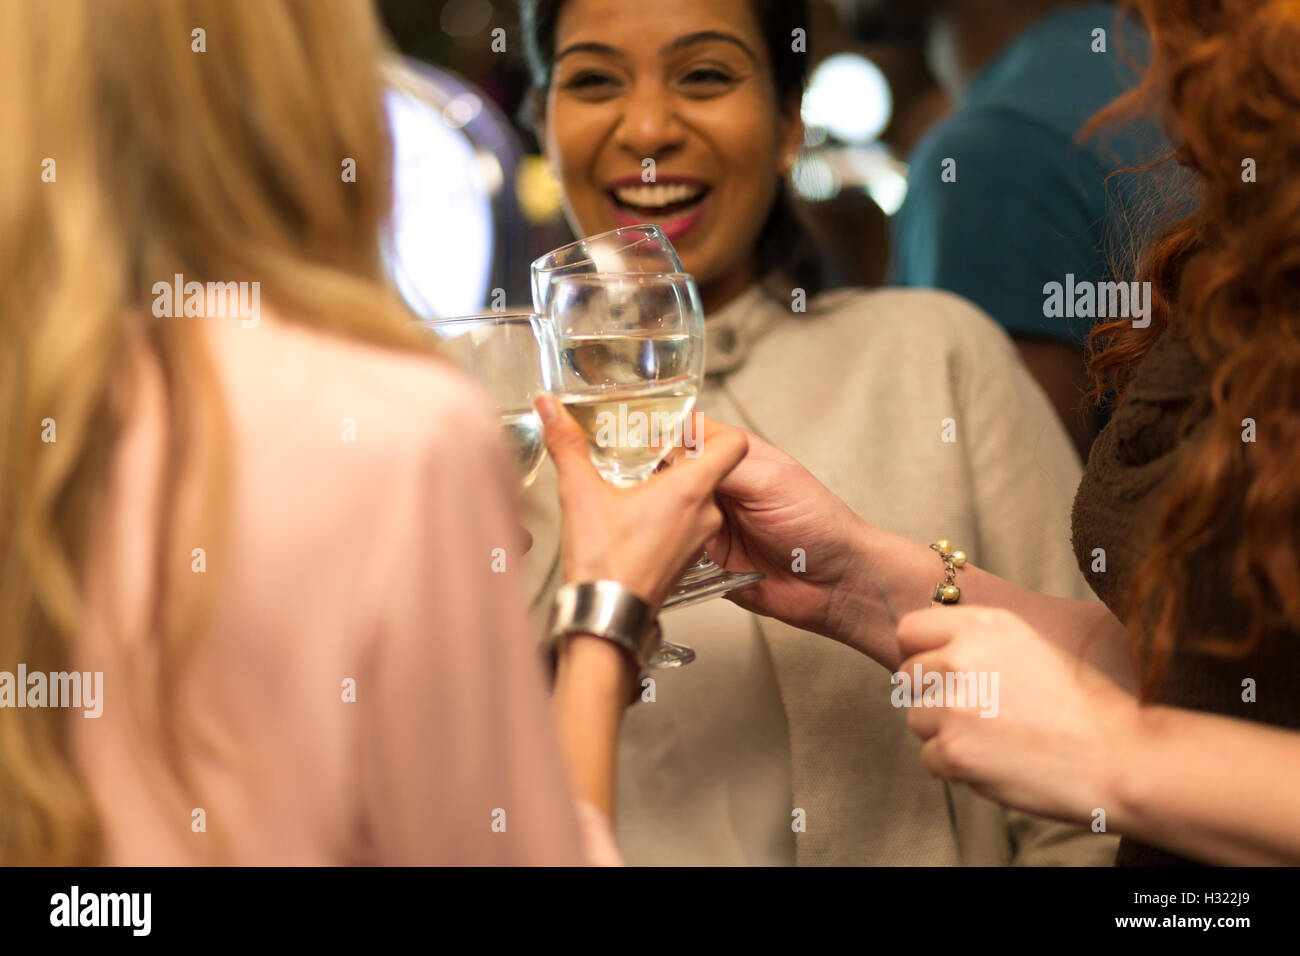 Three women toasting their glasses in a bar - Stock Image